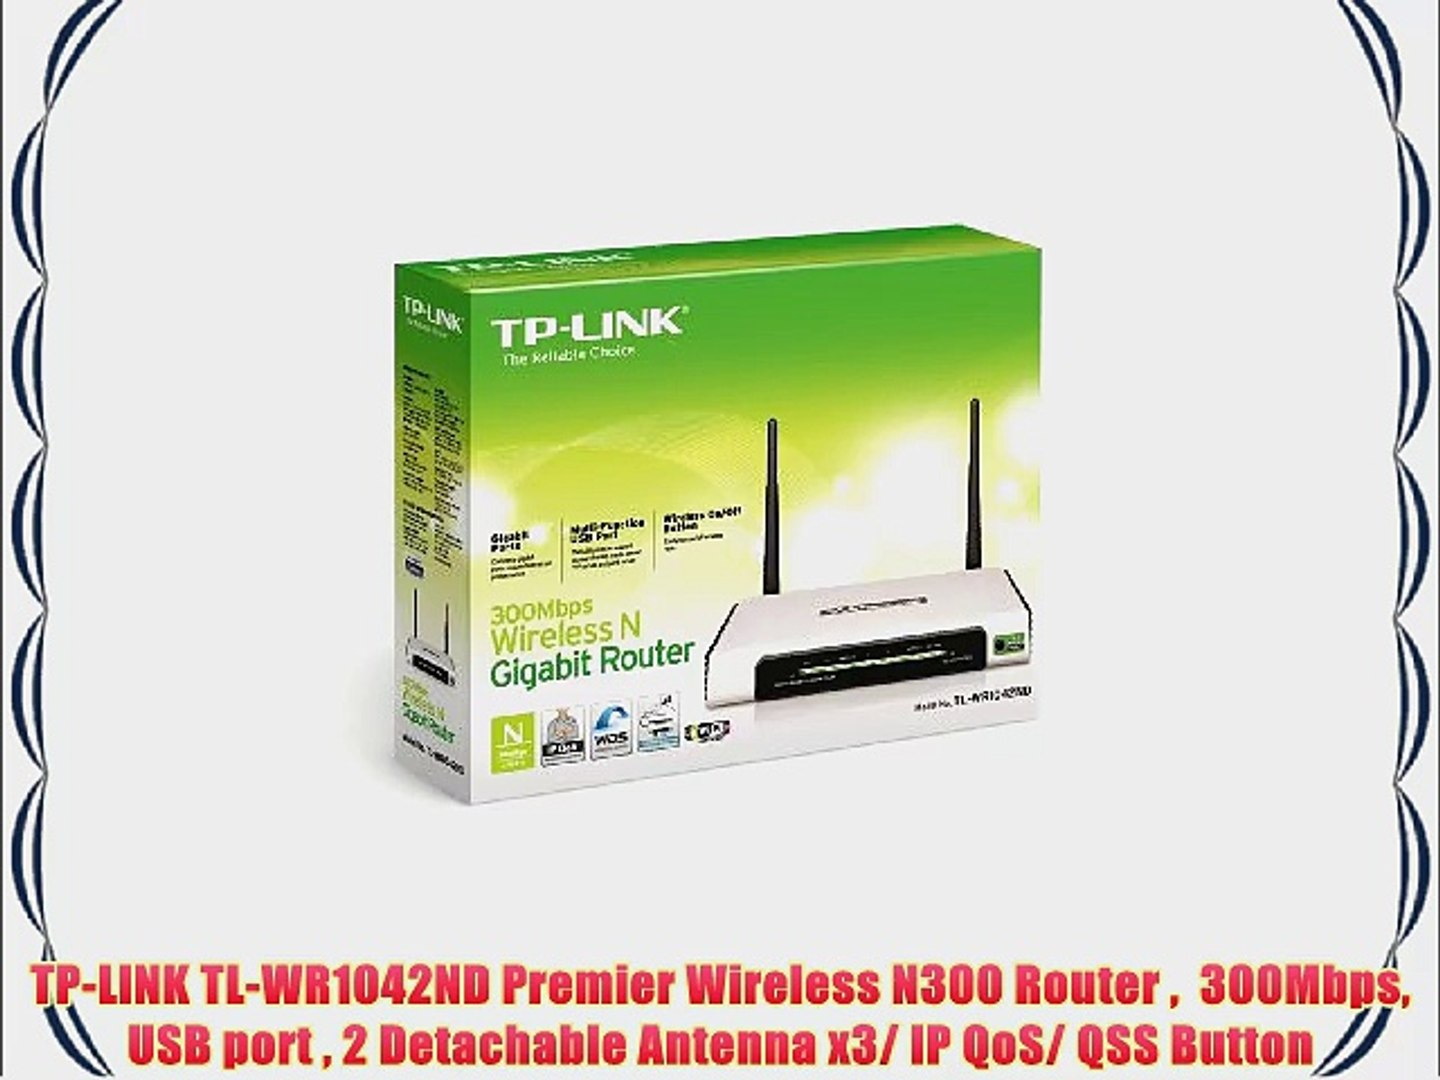 TP-LINK TL-WR1042ND Premier Wireless N300 Router 300Mbps USB port 2  Detachable Antenna x3/